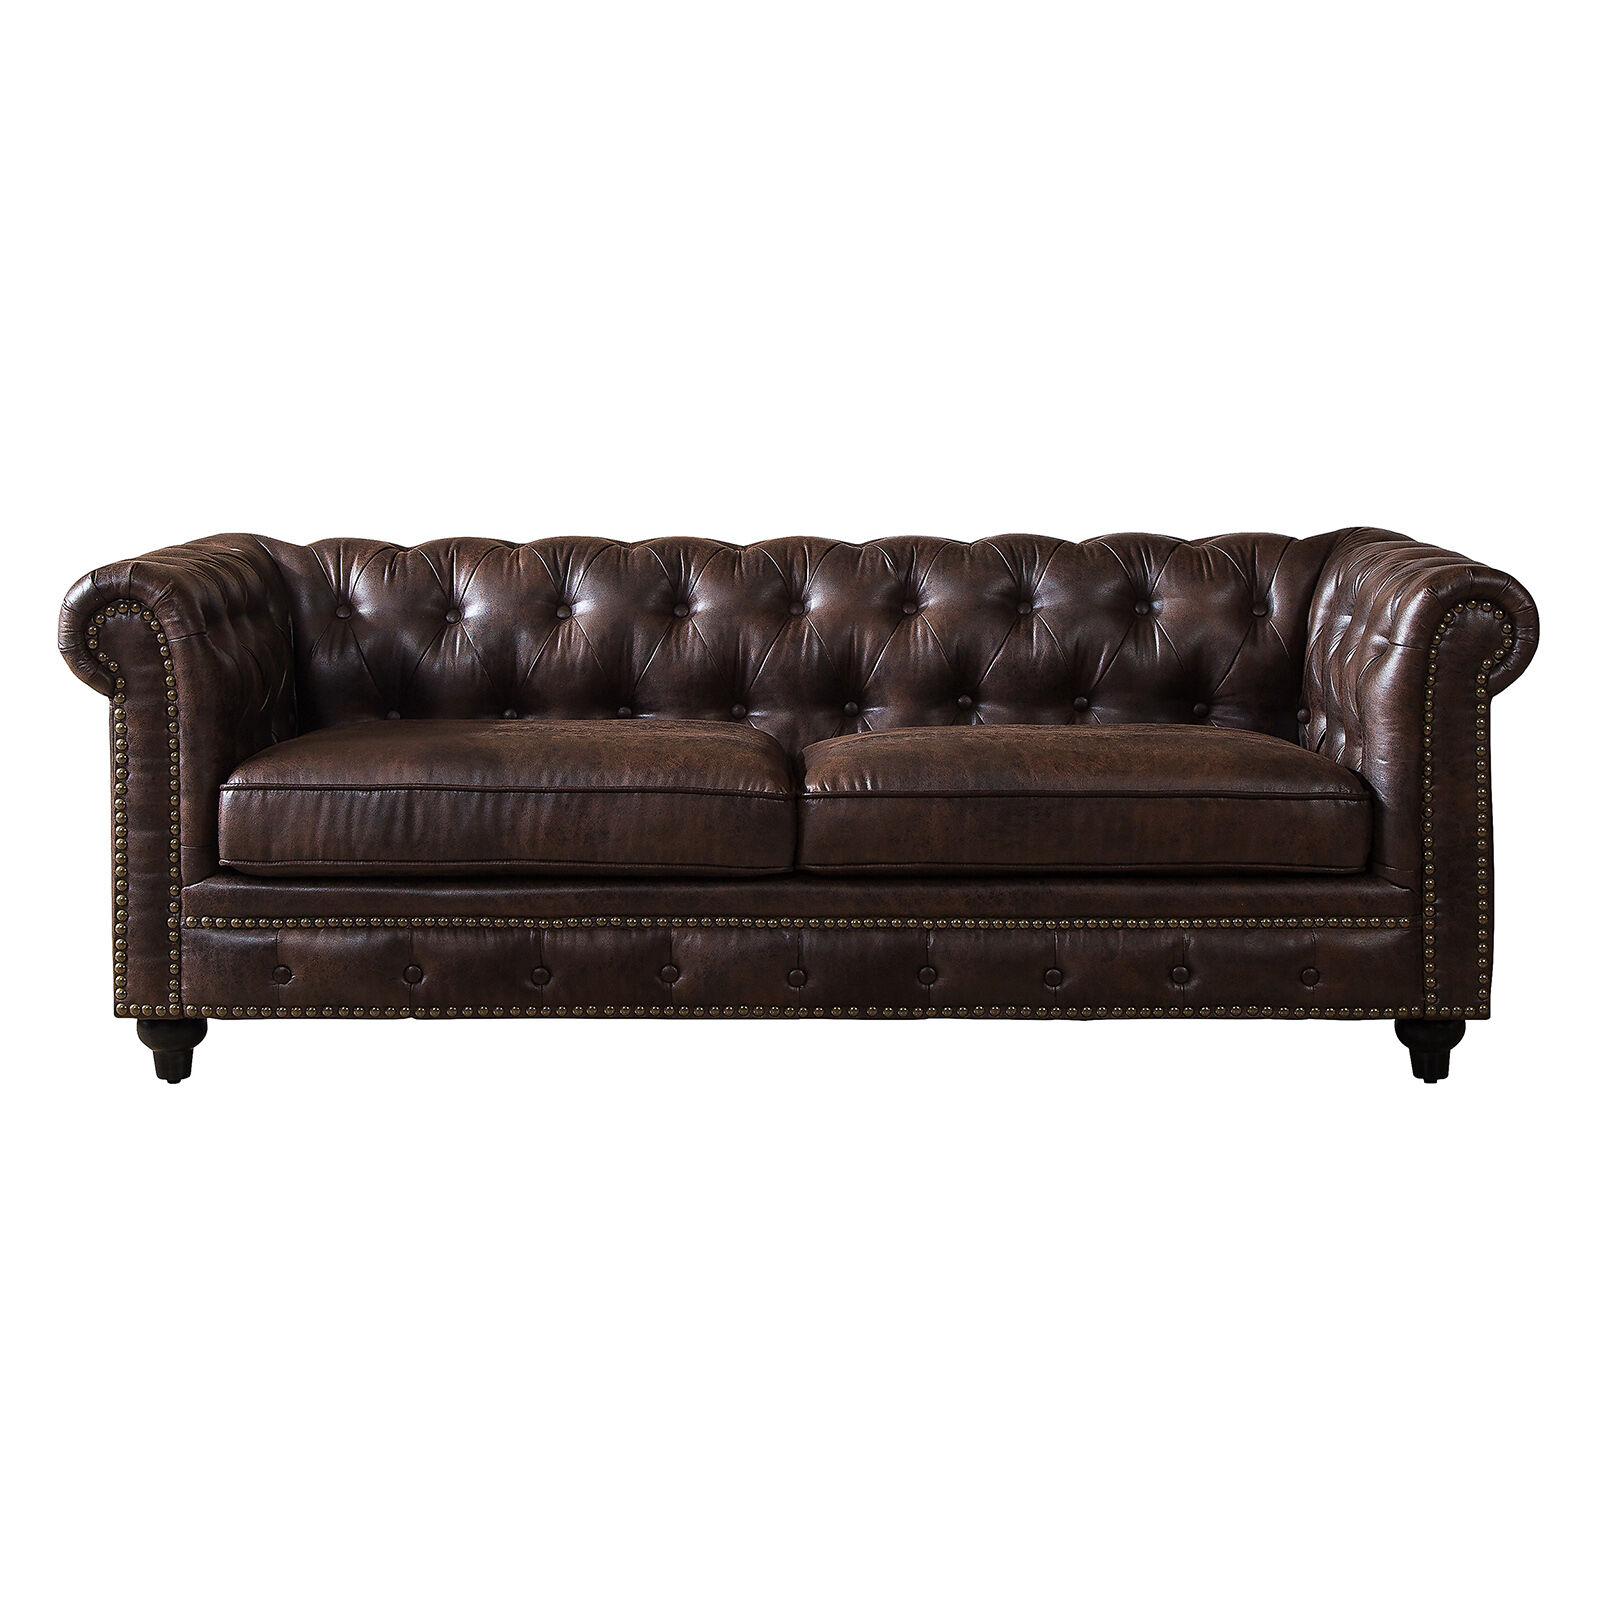 Chesterfield Brown Sofa   At Home Chesterfield Brown Sofa